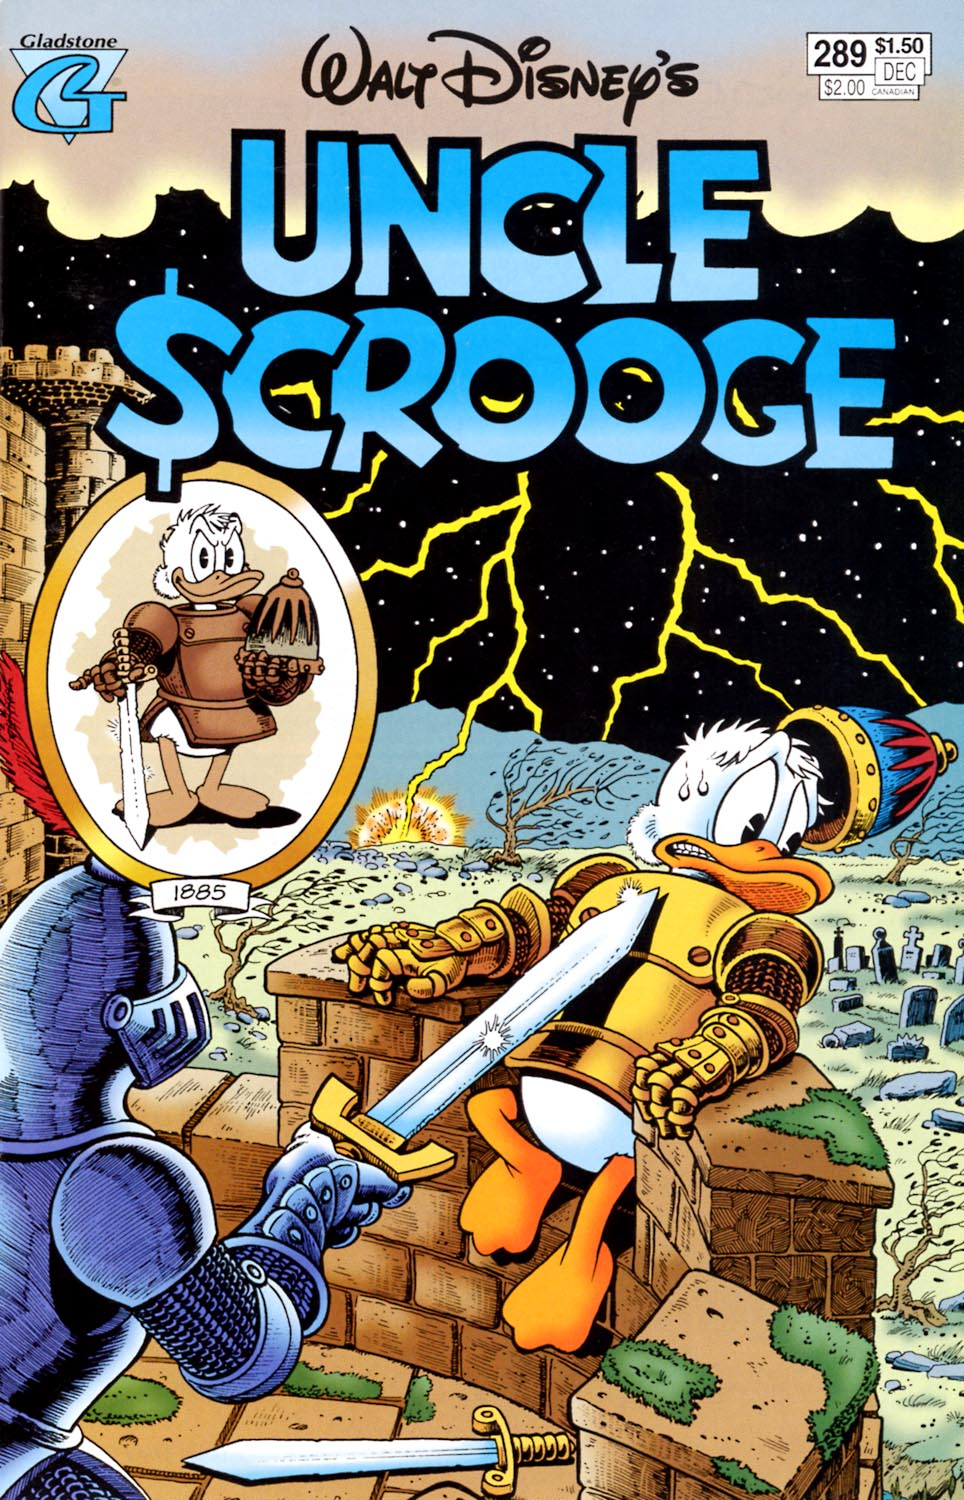 Read online Uncle Scrooge (1953) comic -  Issue #289 - 1